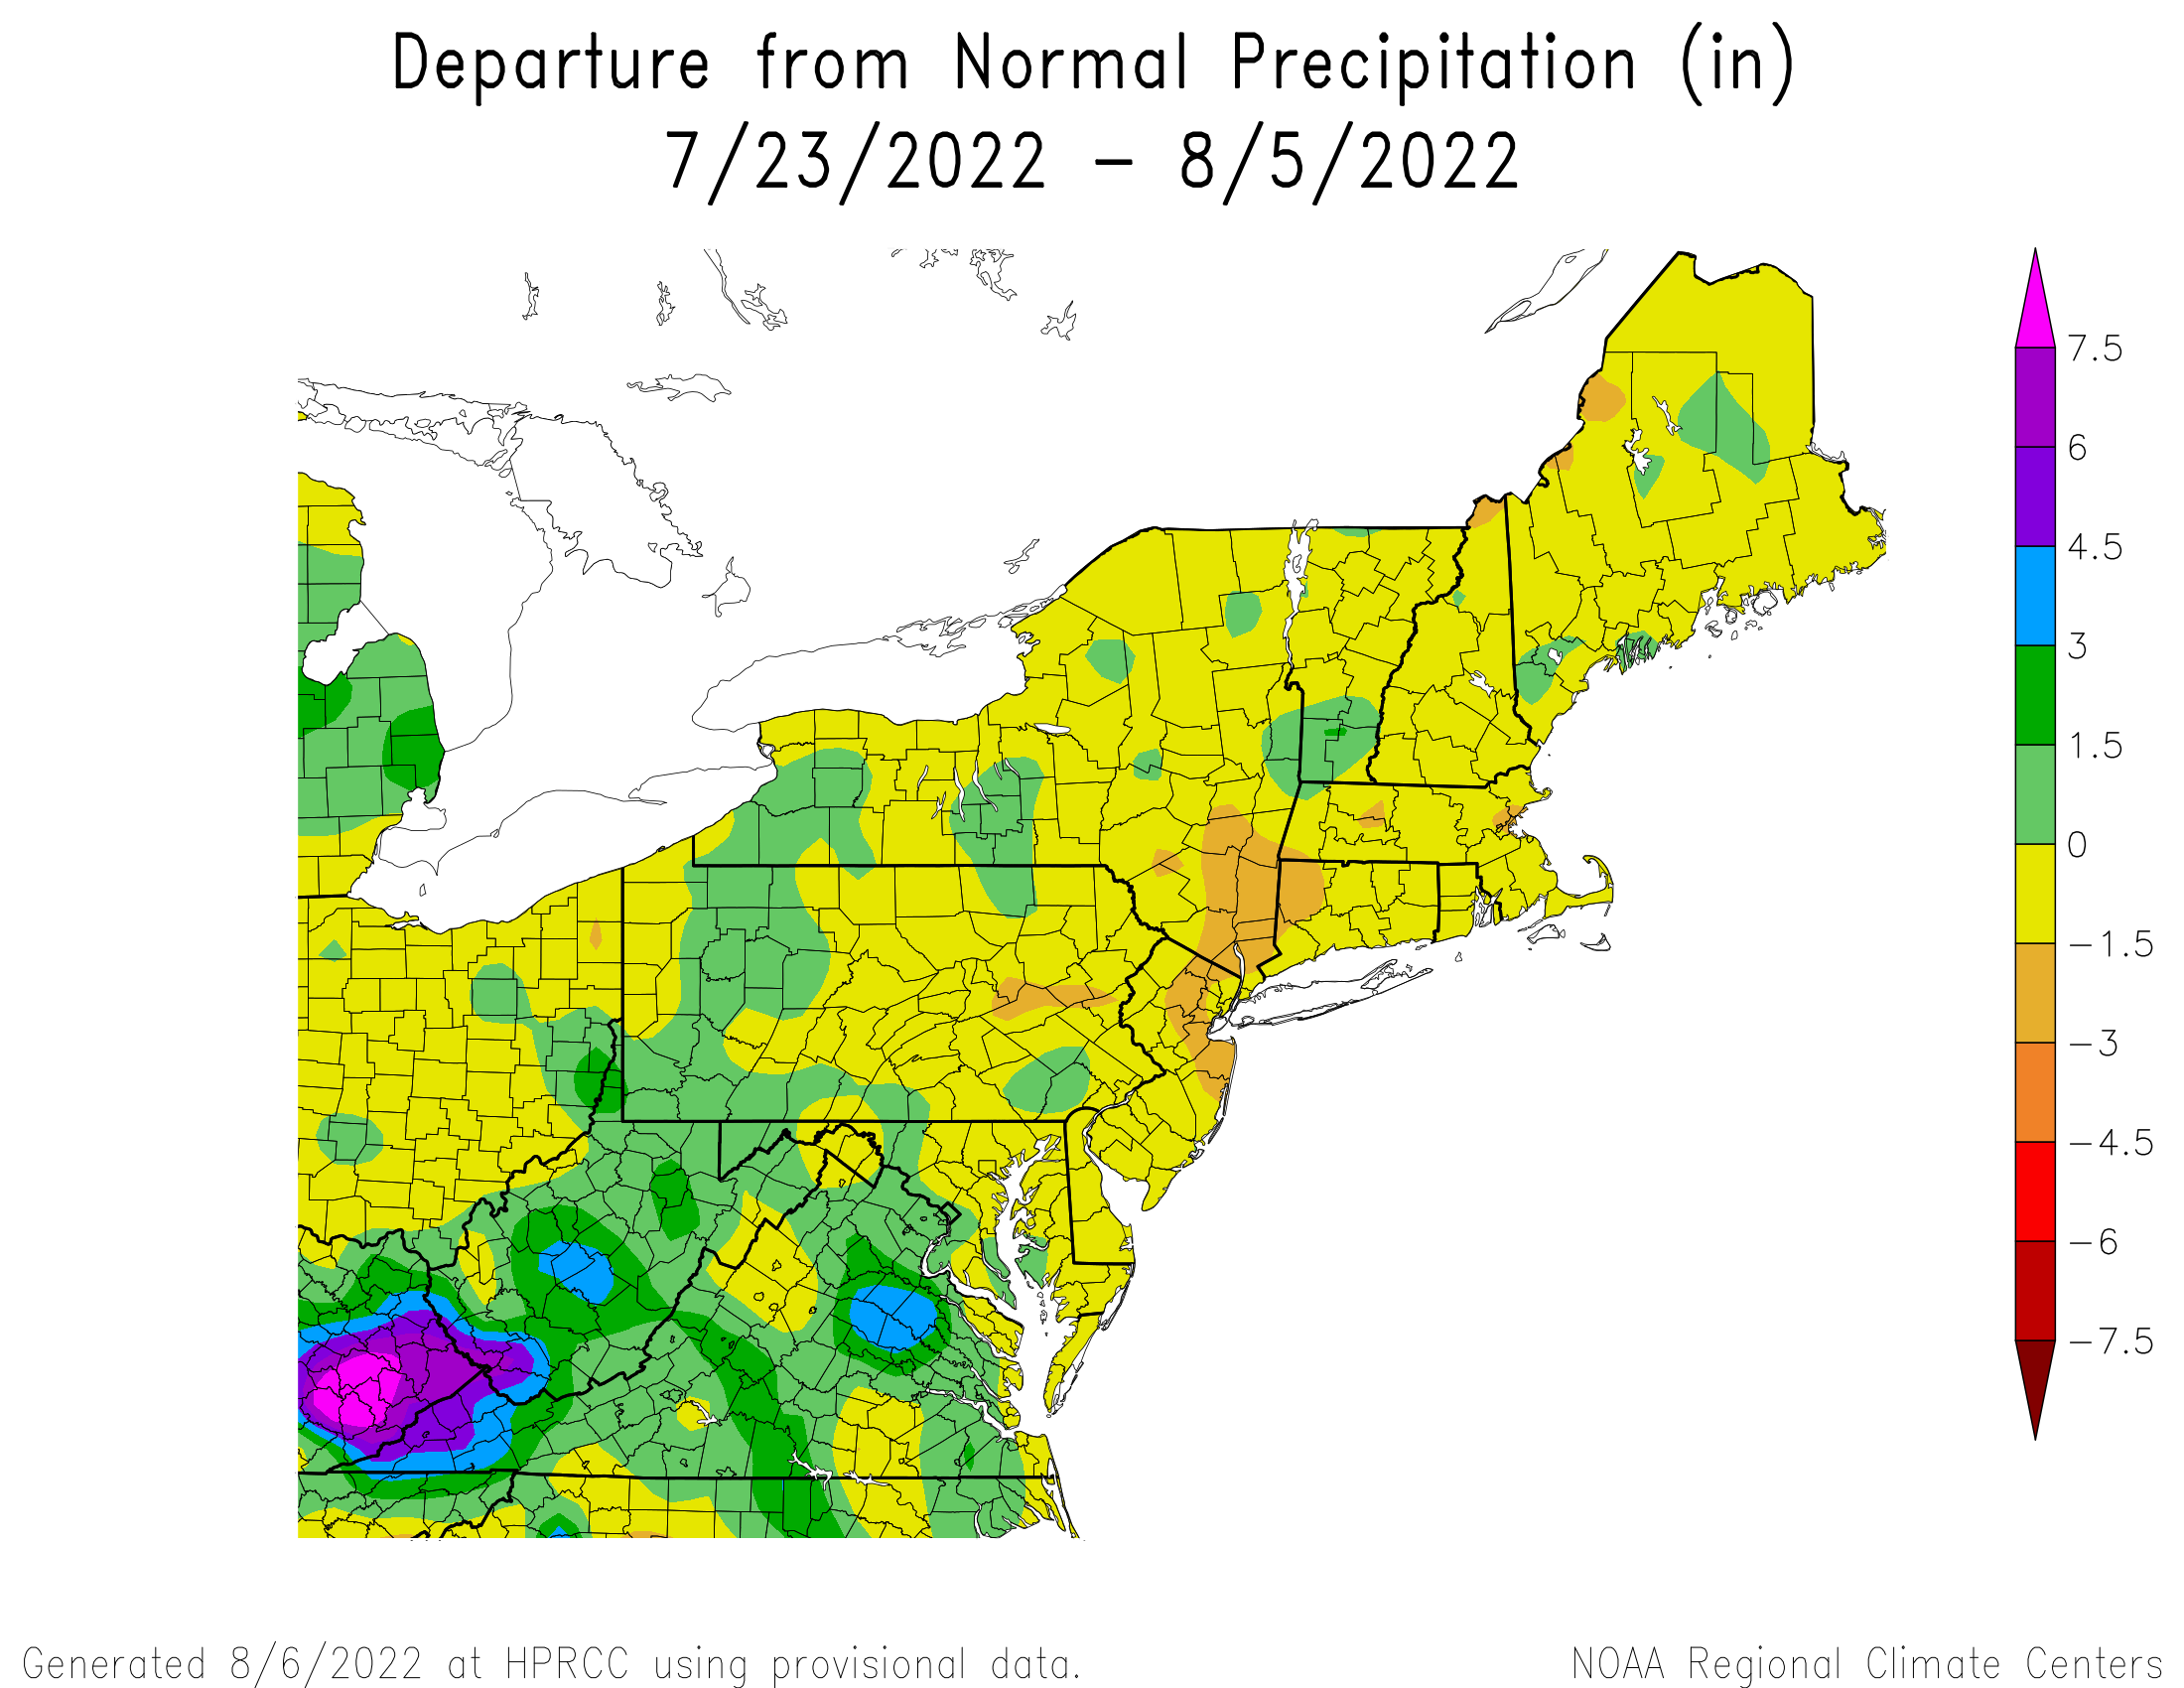 14-Day Total Precipitation Departure